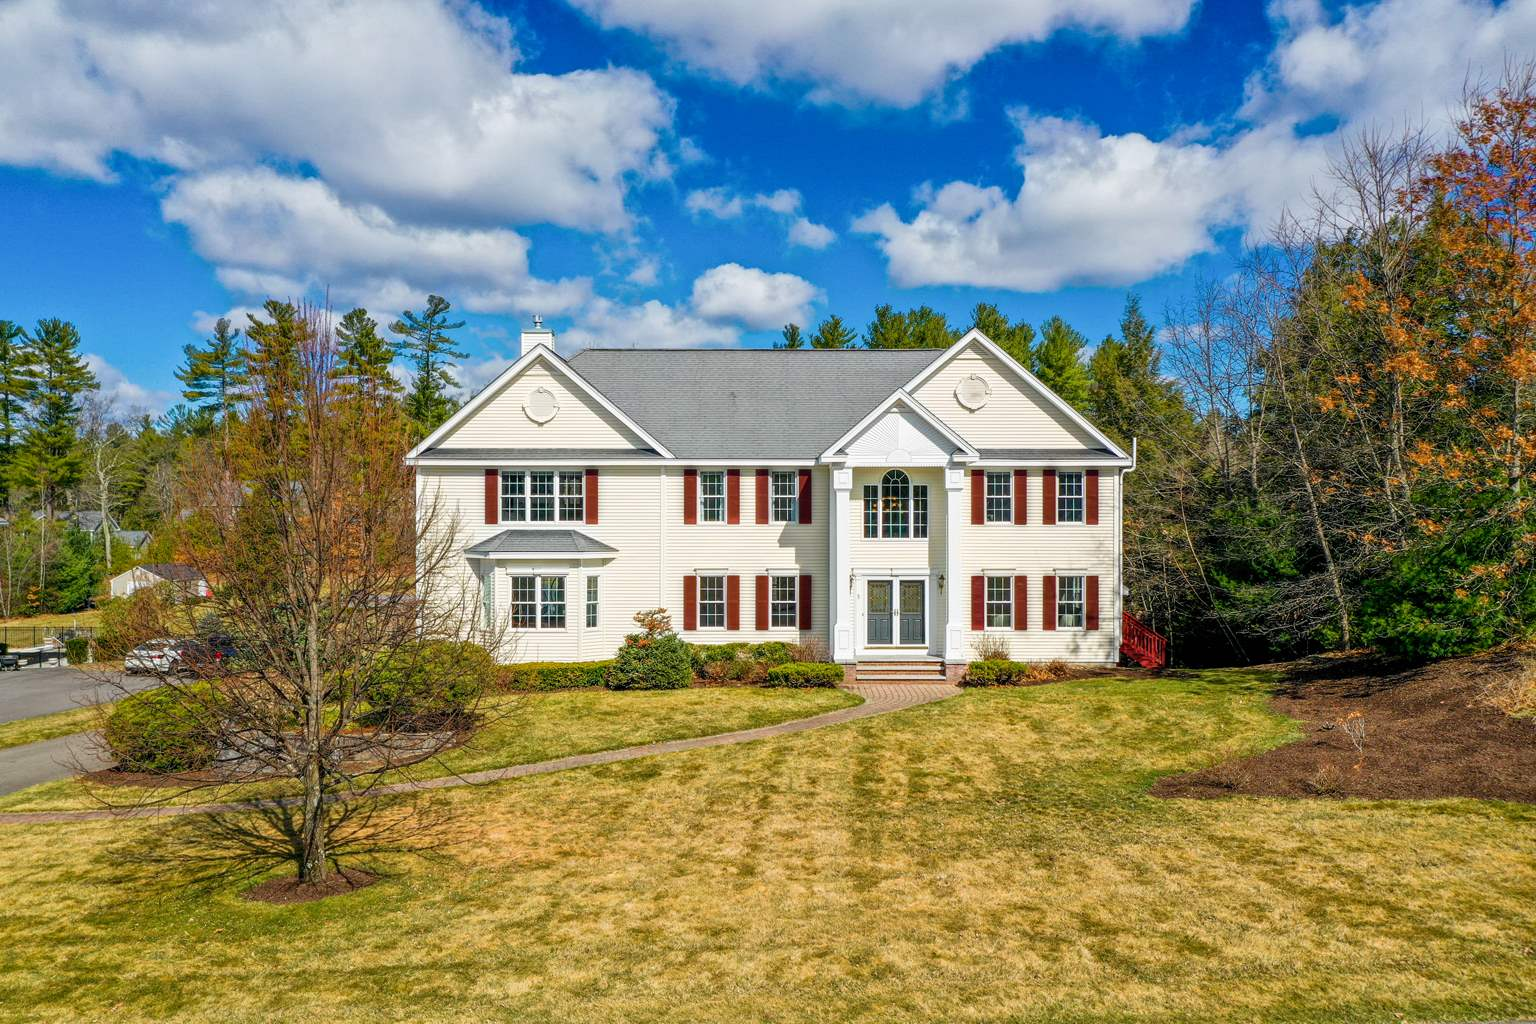 Photo of 5 Westview Drive Litchfield NH 03052